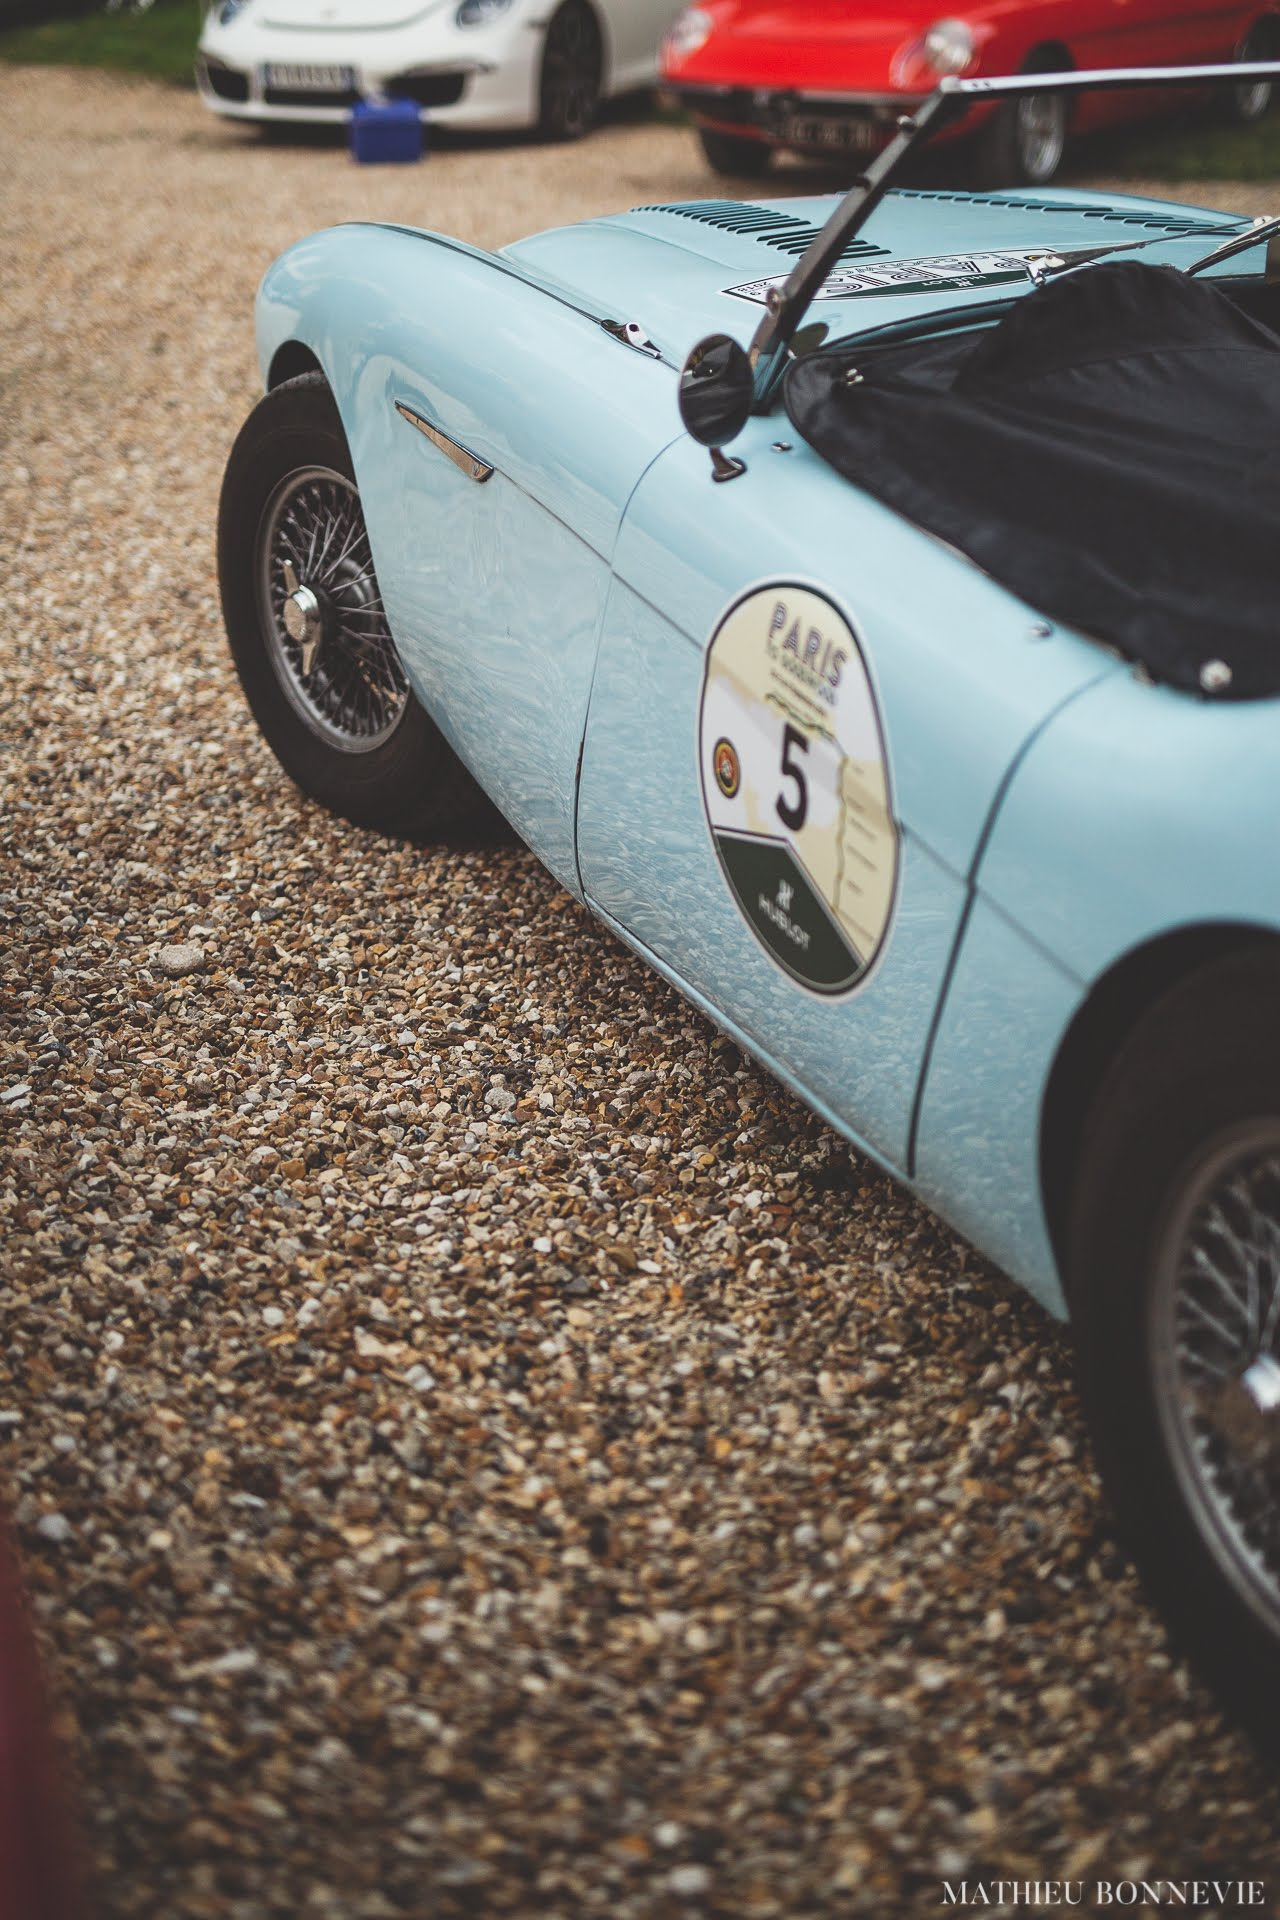 57-goodwoodrevival18-01254-copyright-Mathieu-Bonnevie-1920